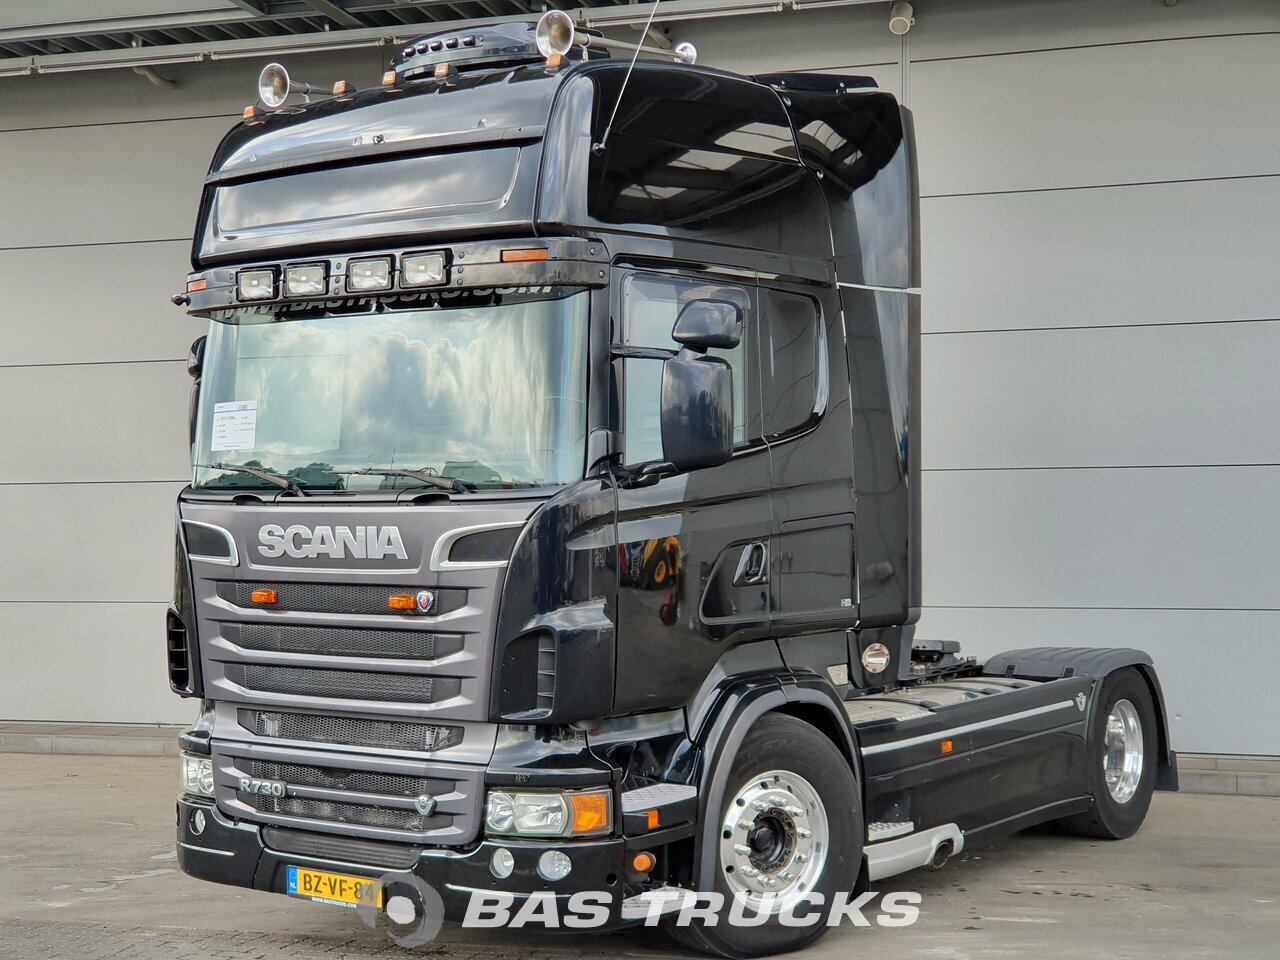 For sale at BAS Trucks: Scania R730 4X2 03/2012